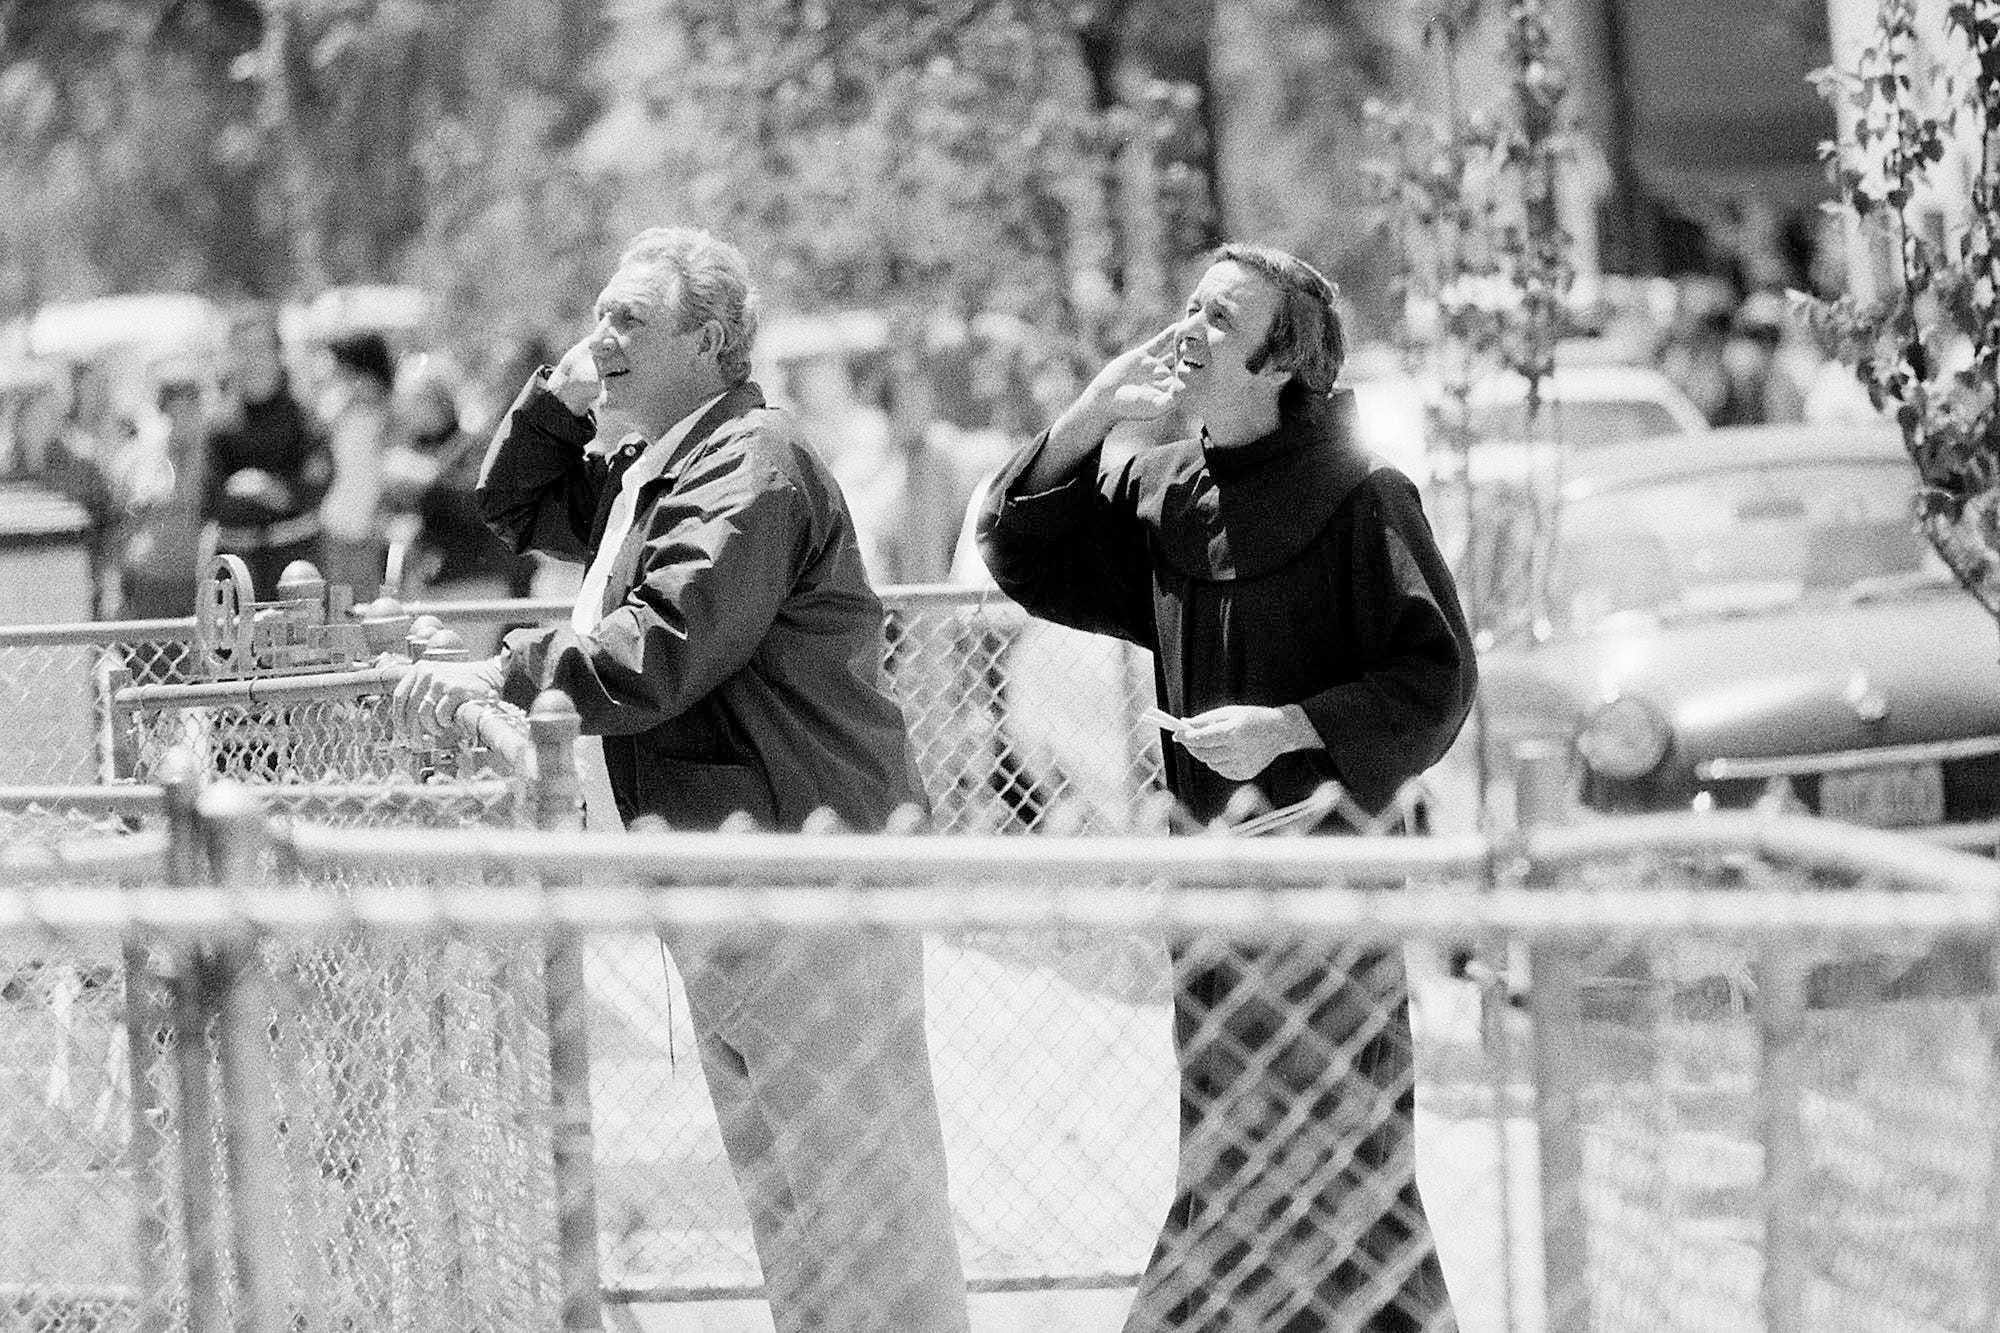 Judge Fred C. Galda and Father Mychal Judge listen to requests from inside the house during a police standoff with James G. Hyams who was holding his wife and their three children hostage in his wife's home with a shotgun and two handguns in Carlstadt, N.J., on May 19, 1974. During the all-day seige, Hyams had fired three shots and police fired one. No one was injured.